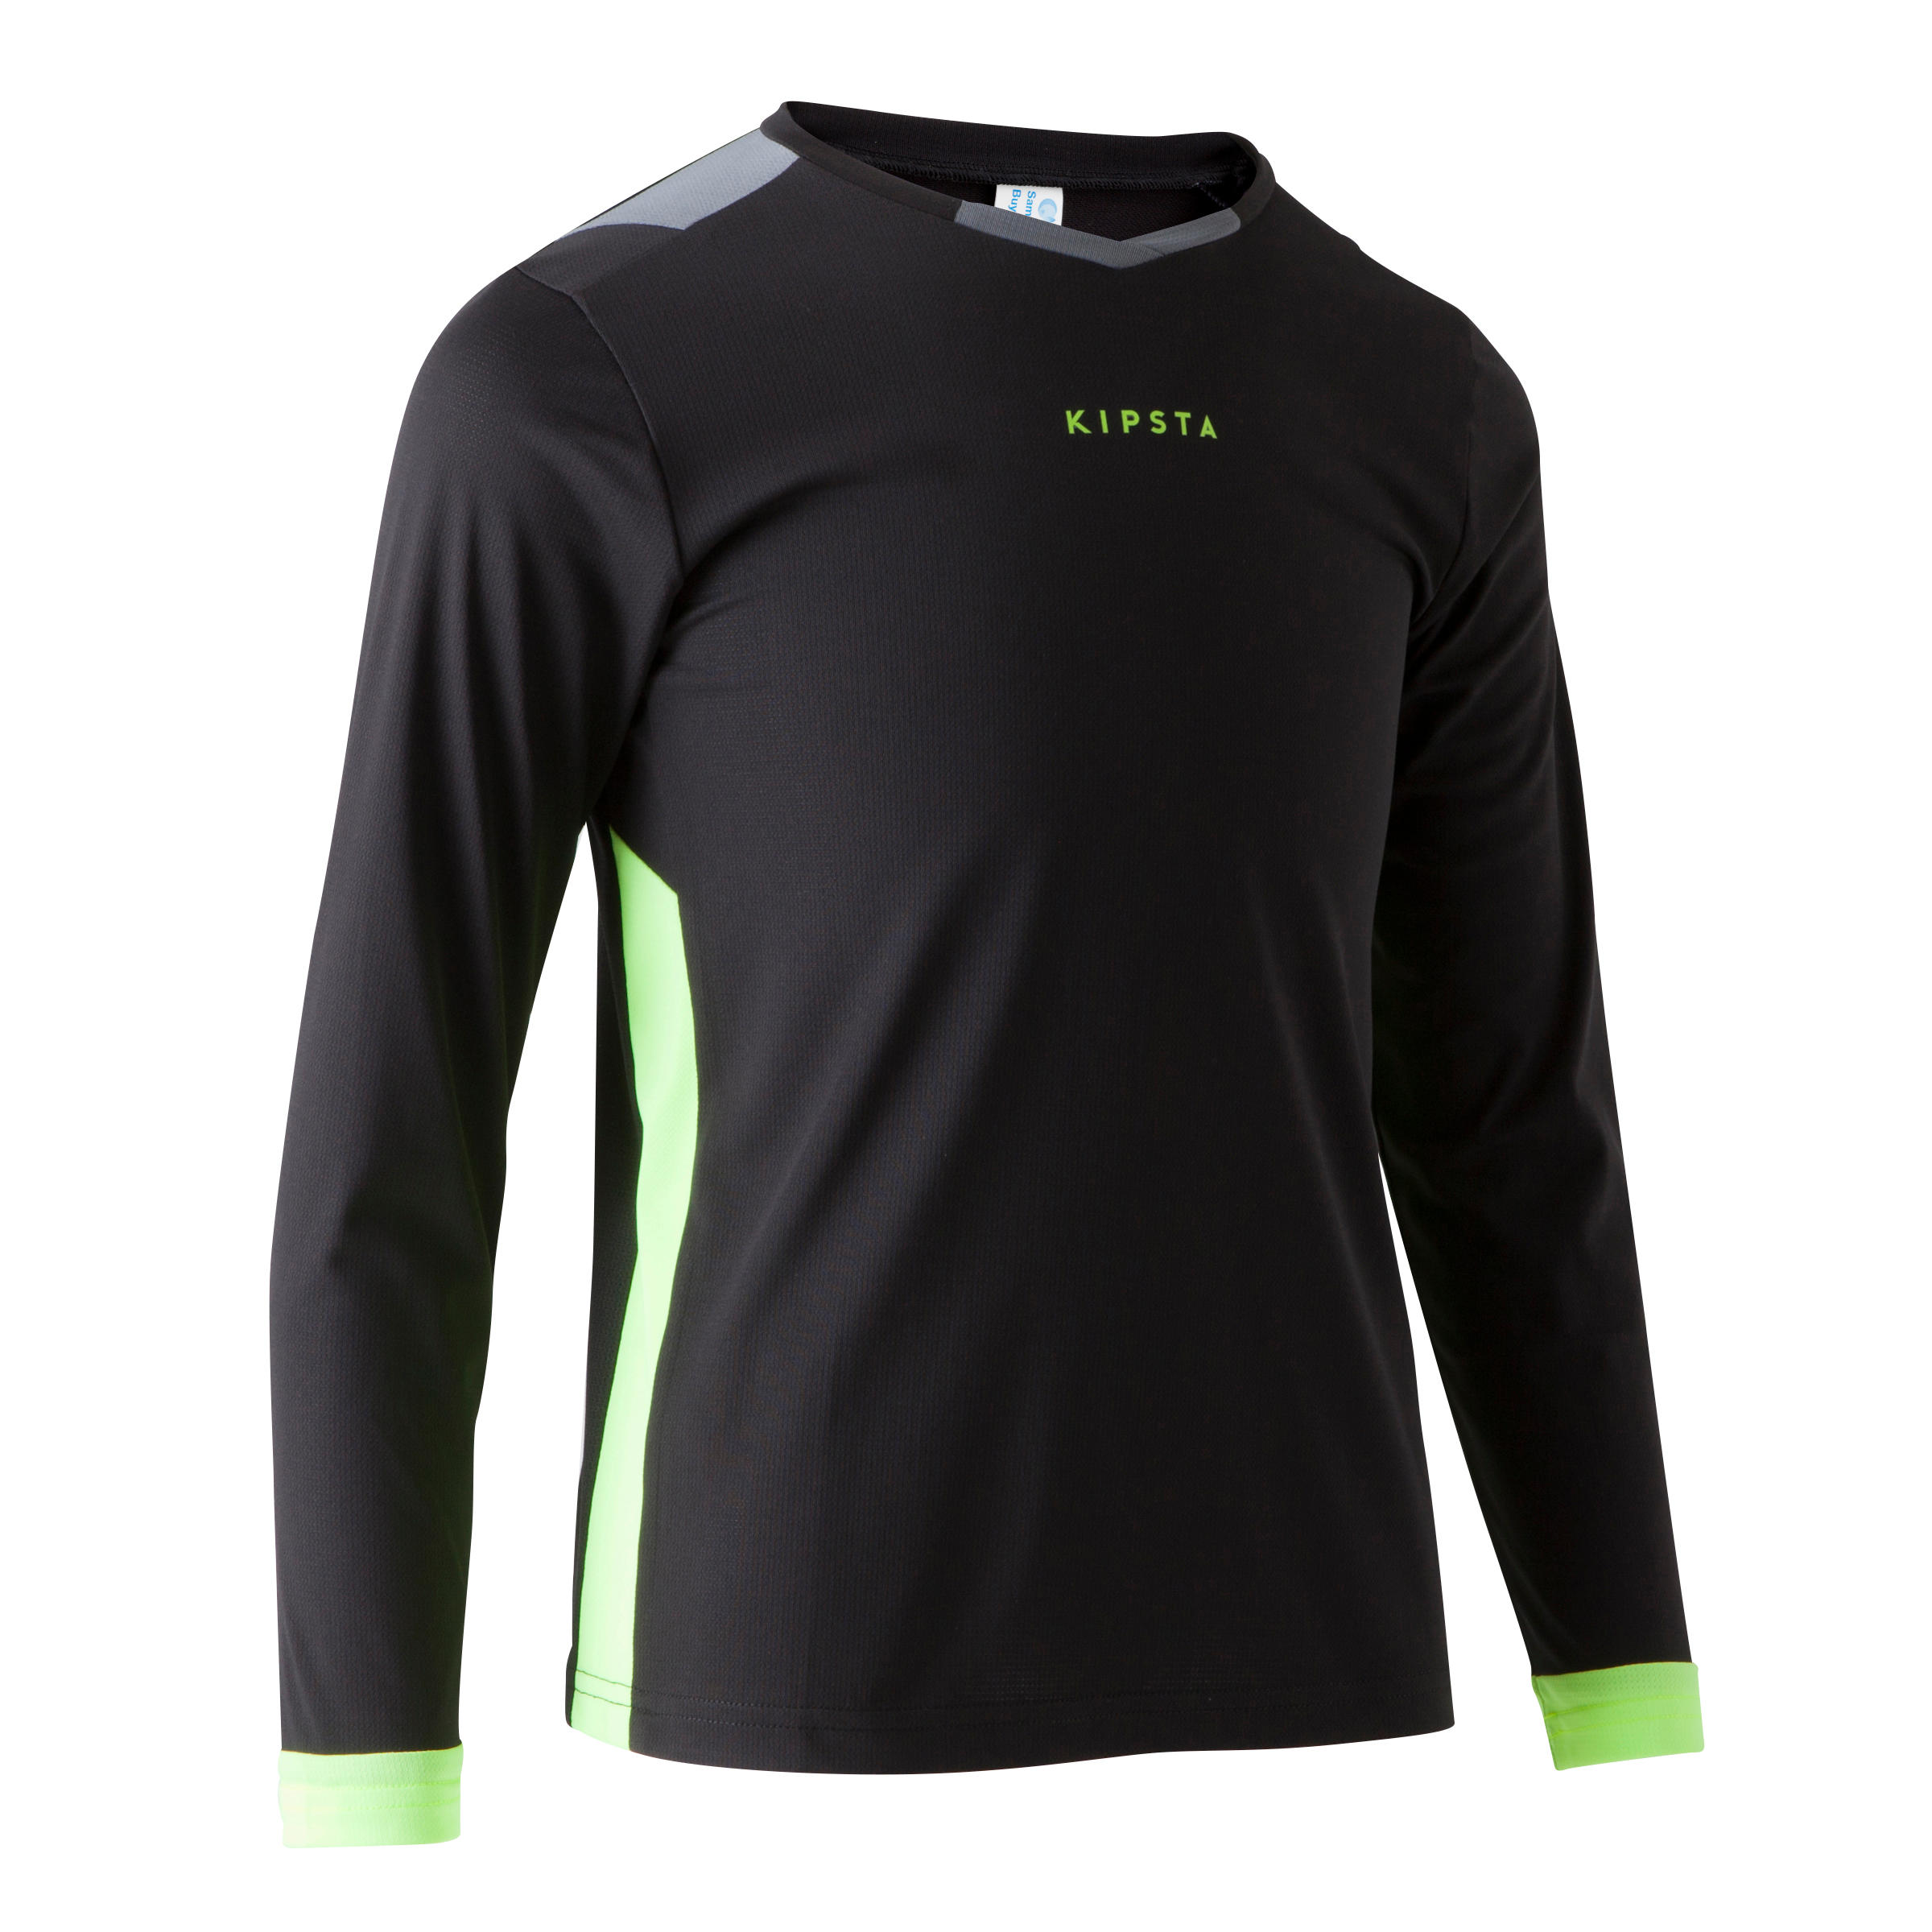 F500 Kids' Long-Sleeved Soccer Jersey - Black